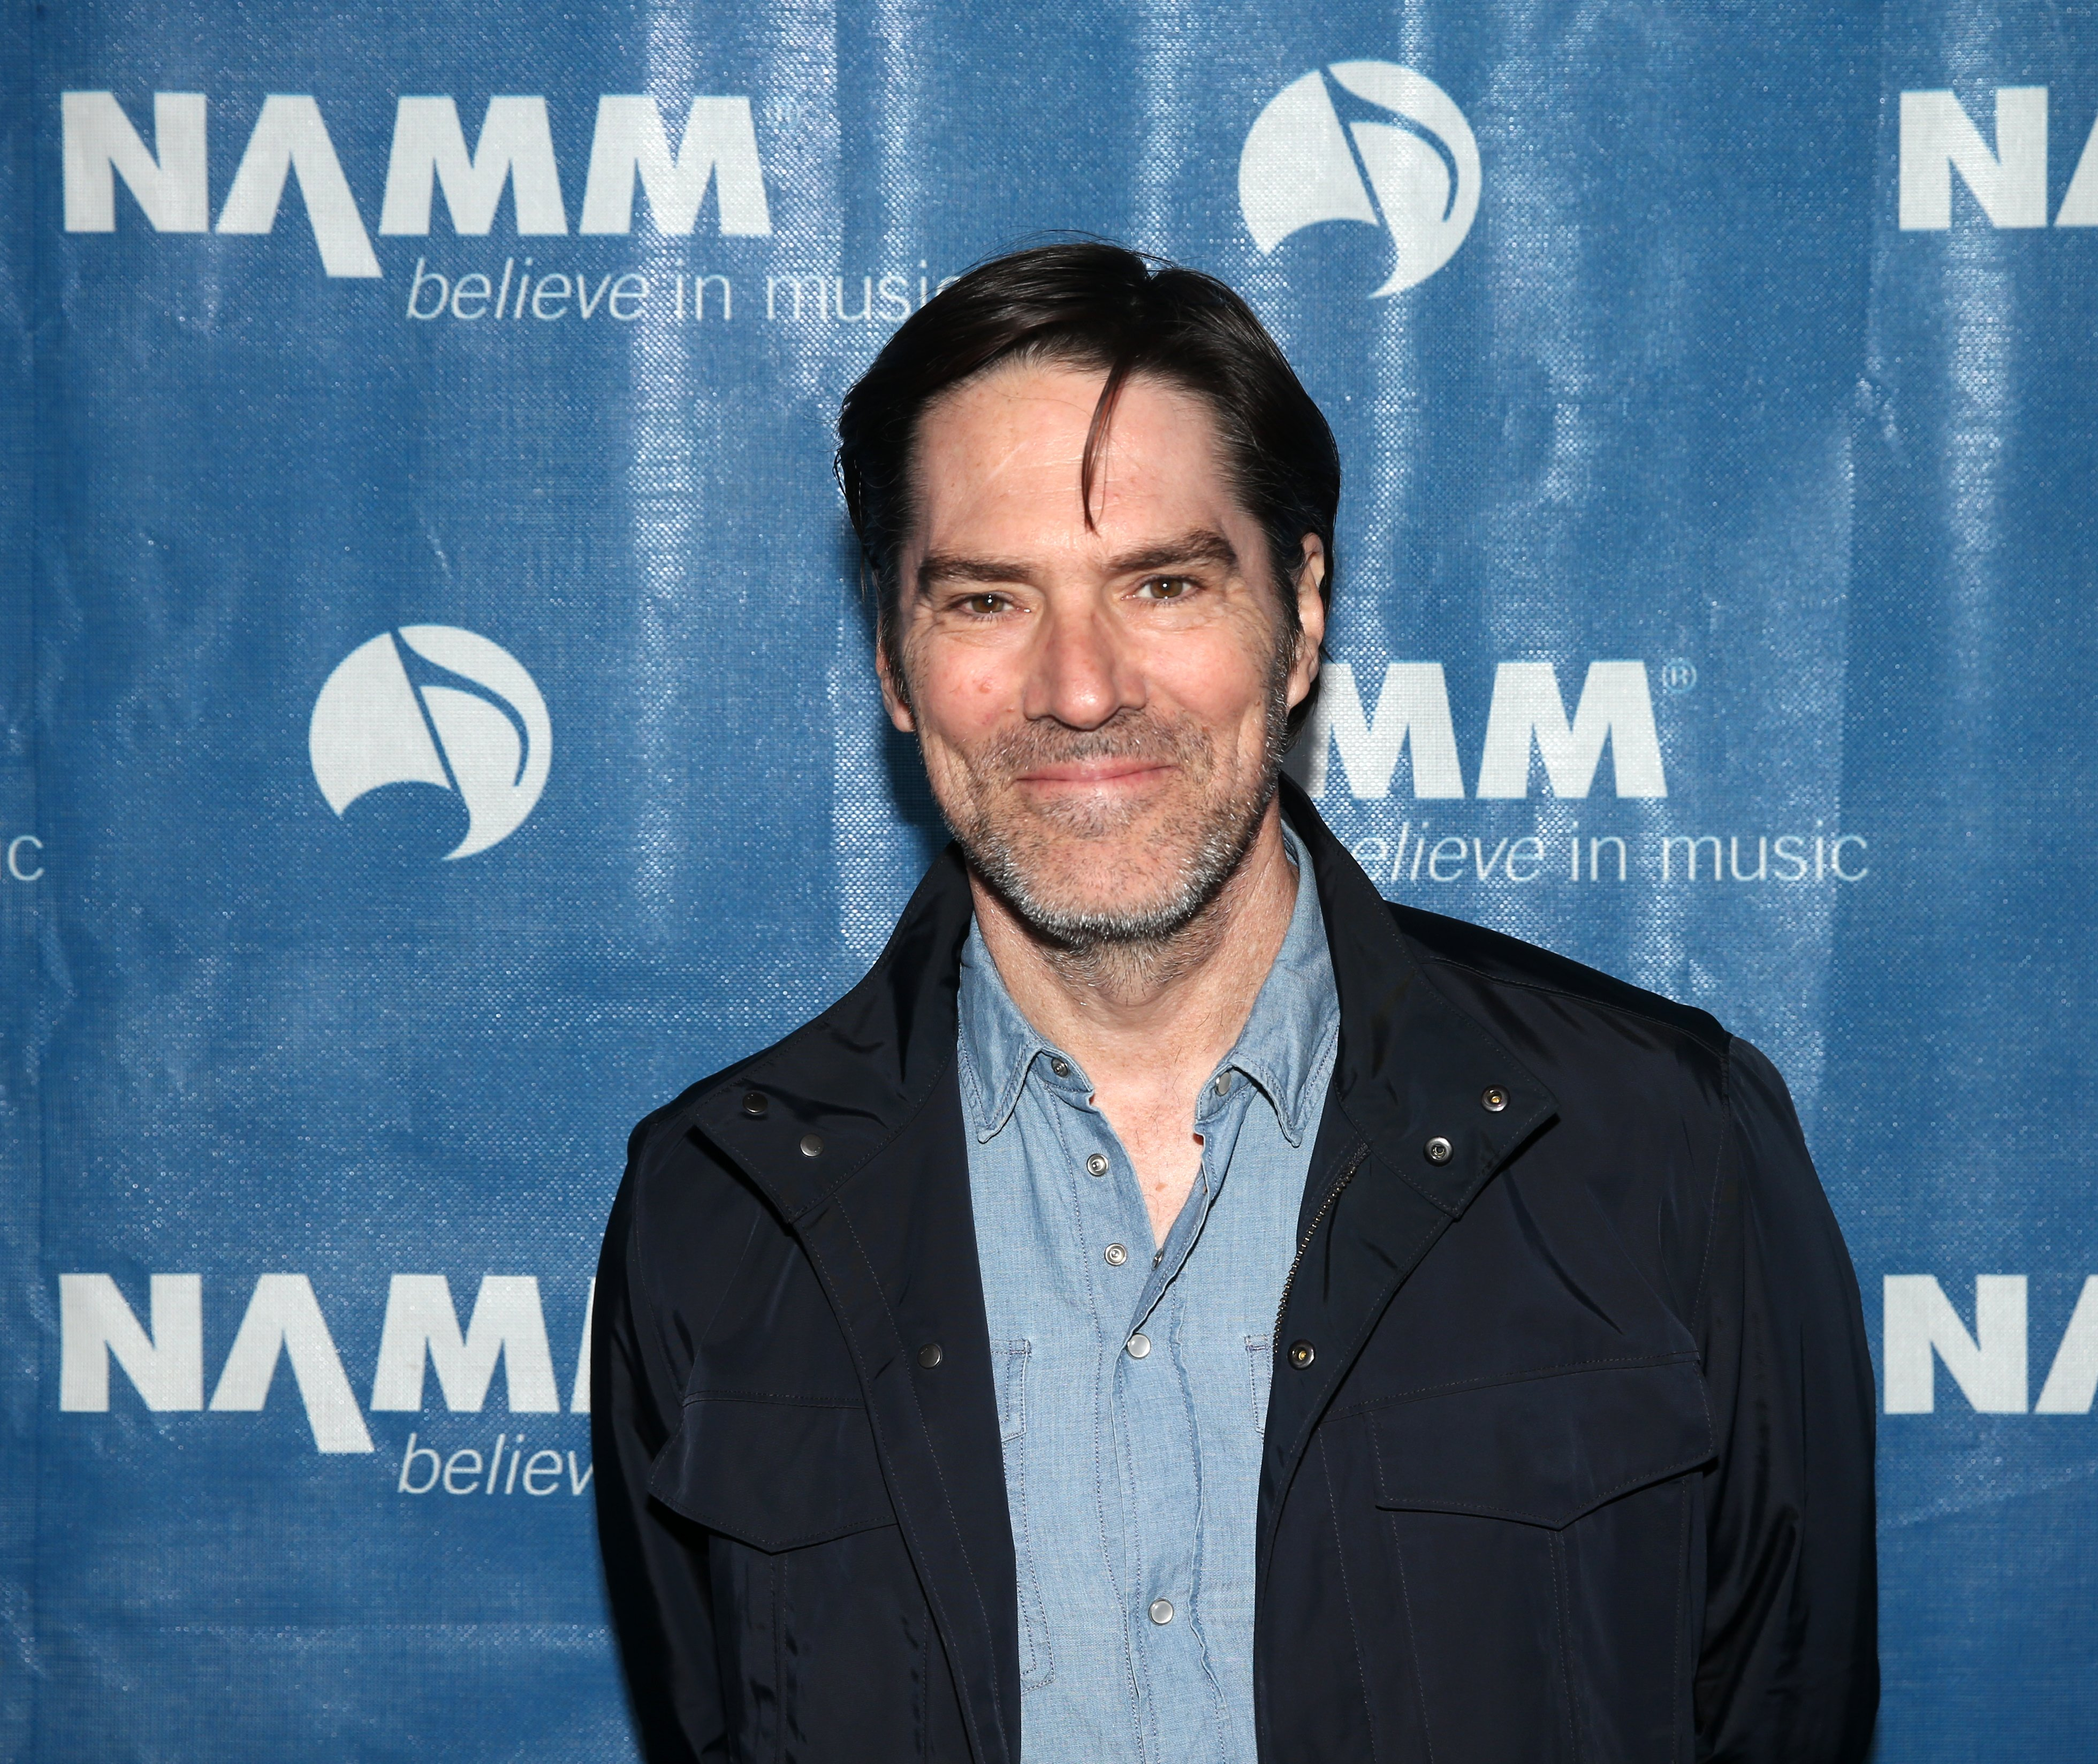 Thomas Gibson on January 19, 2017 in Anaheim, California | Source: Getty Images